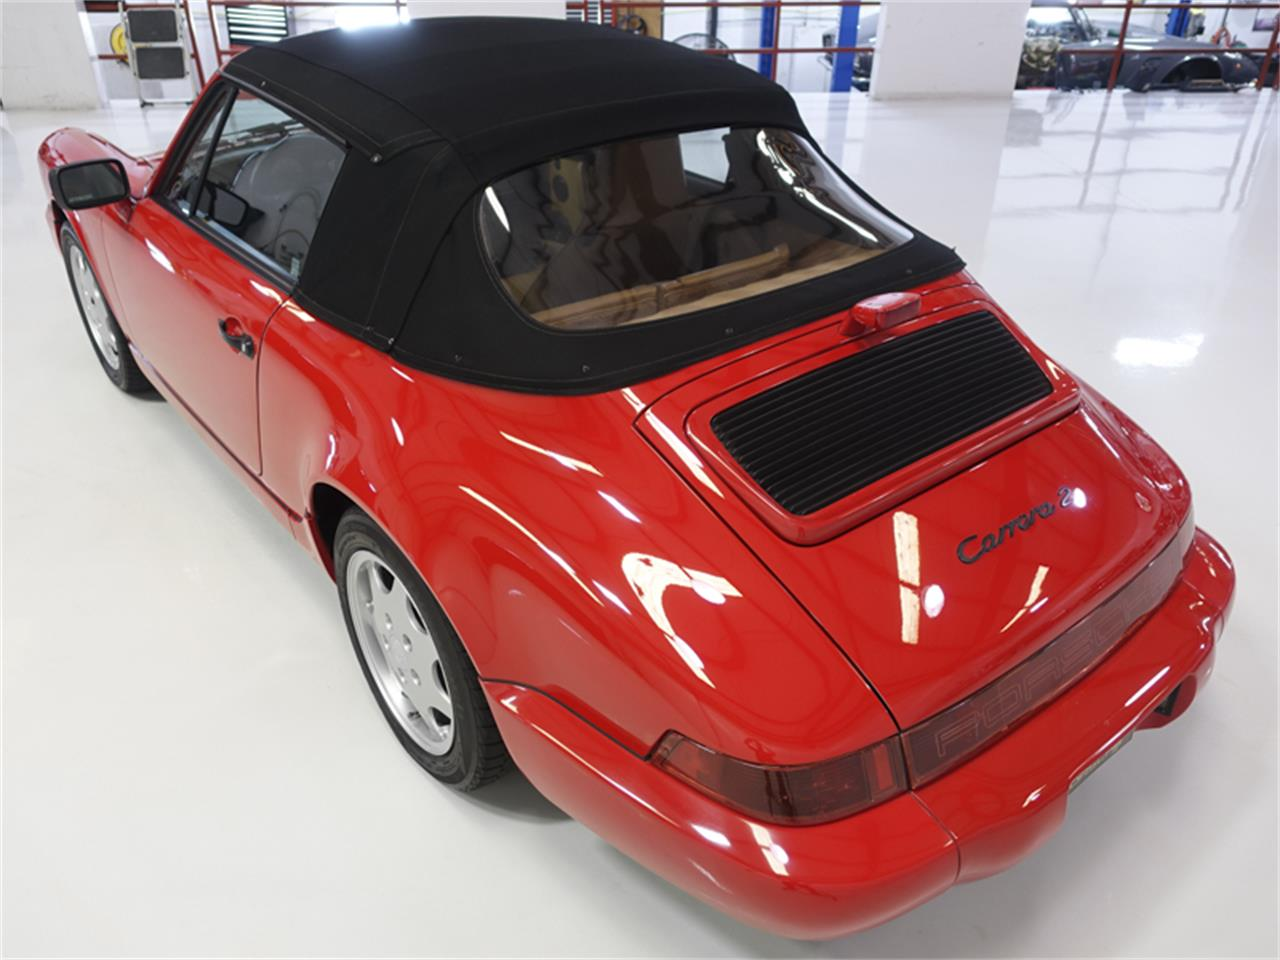 Large Picture of '90 Porsche 964 Carrera 2 located in Saint Louis Missouri Offered by Daniel Schmitt & Co. - PVNV